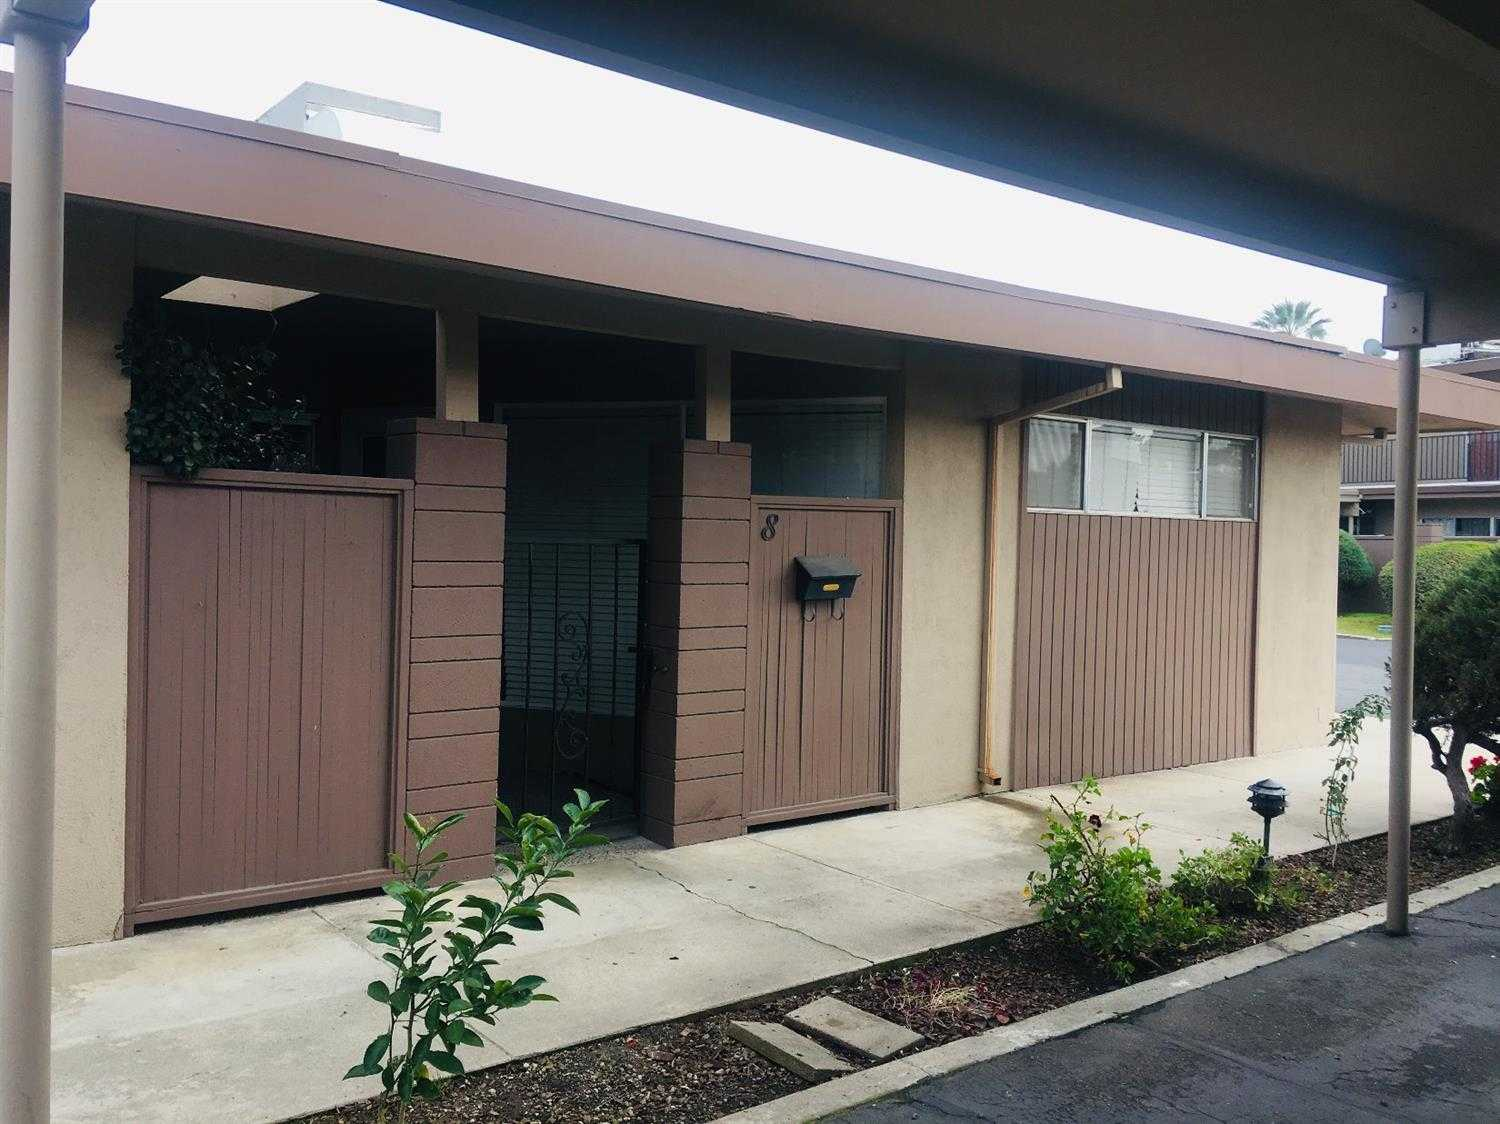 $130,000 - 1Br/1Ba -  for Sale in Modesto